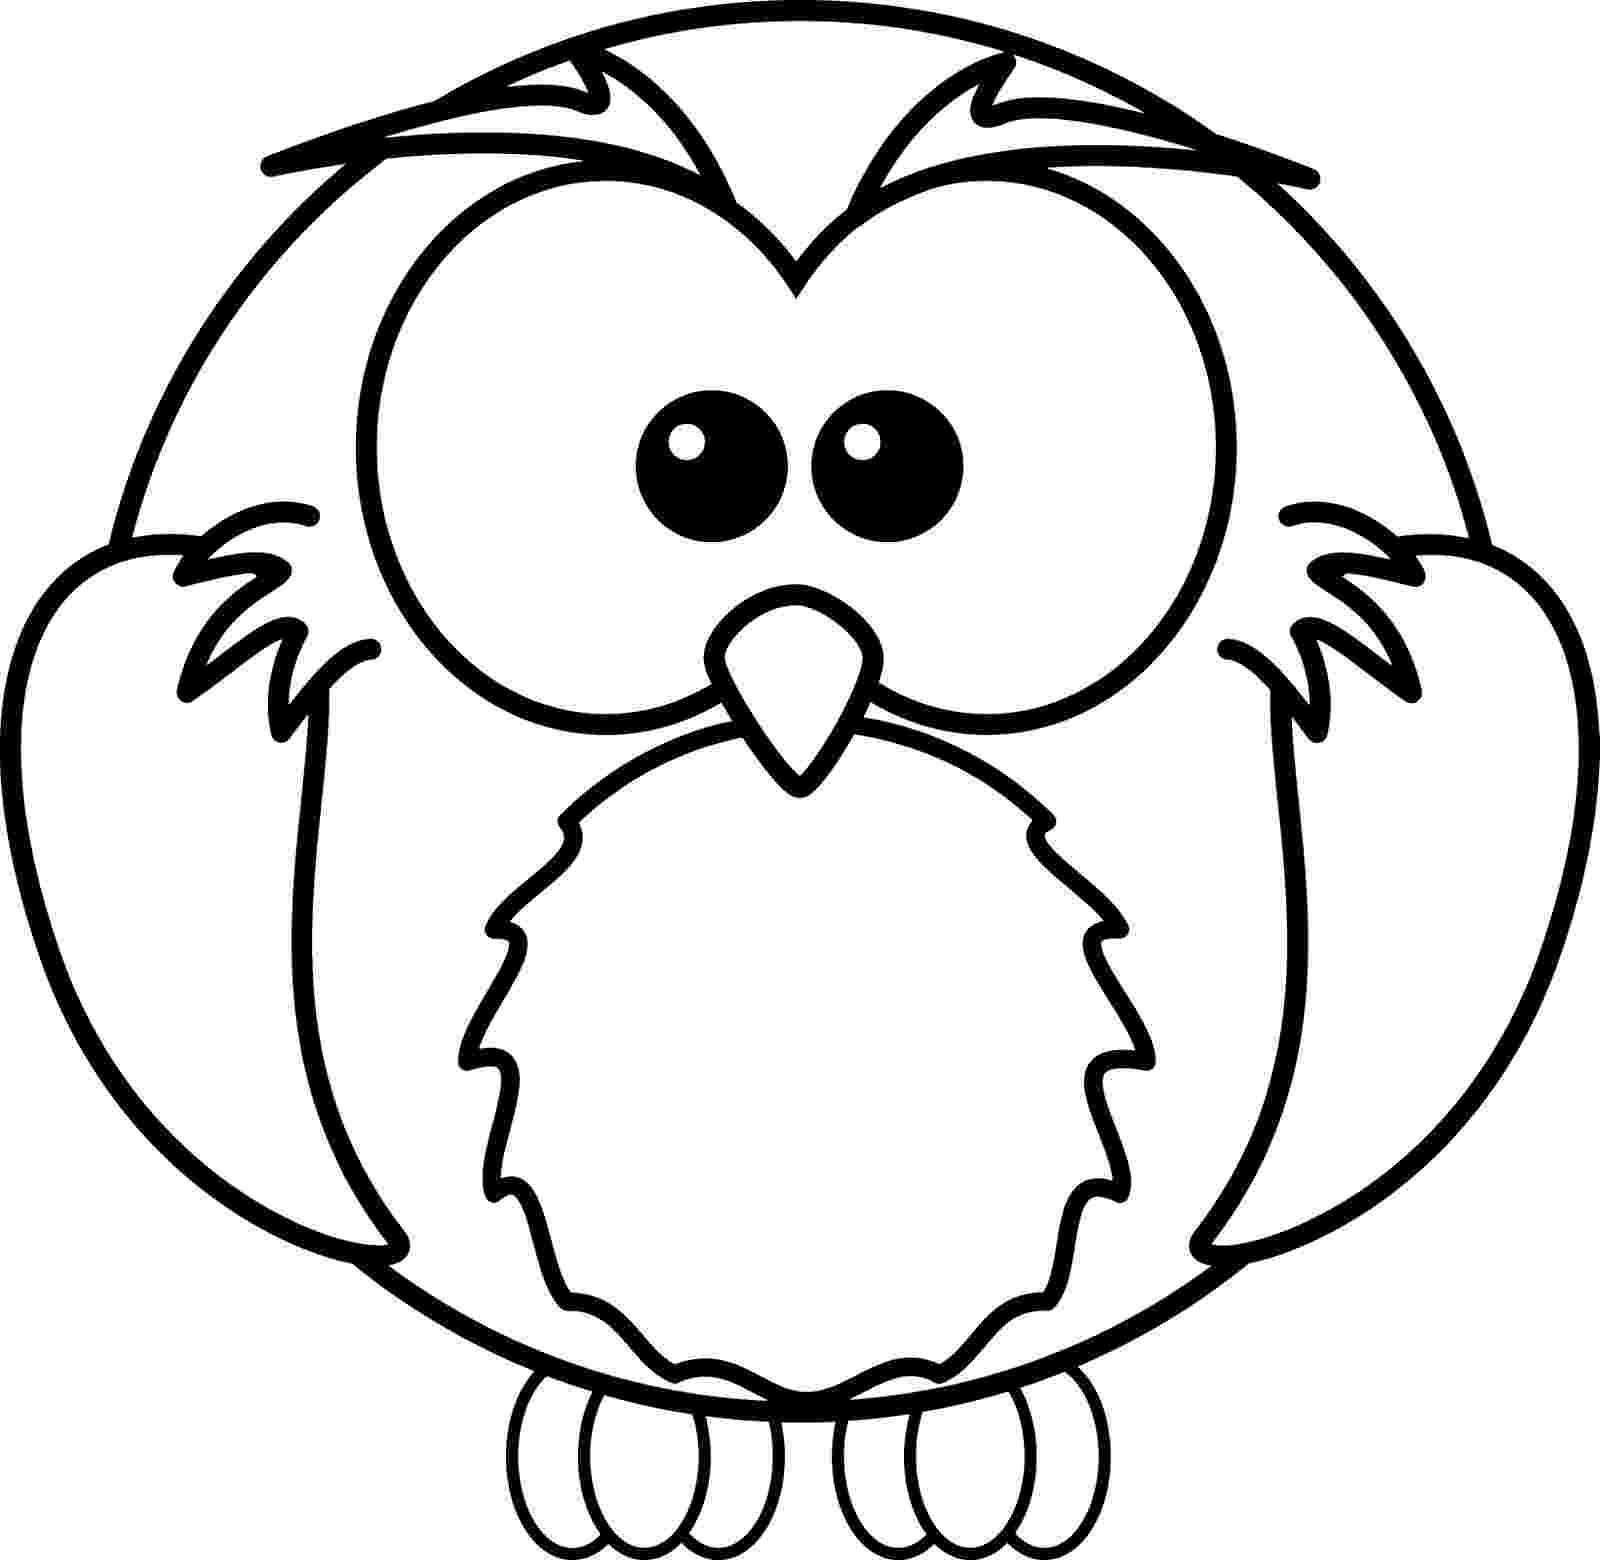 owl coloring pages to print cute owl coloring page free printable coloring pages owl coloring print pages to